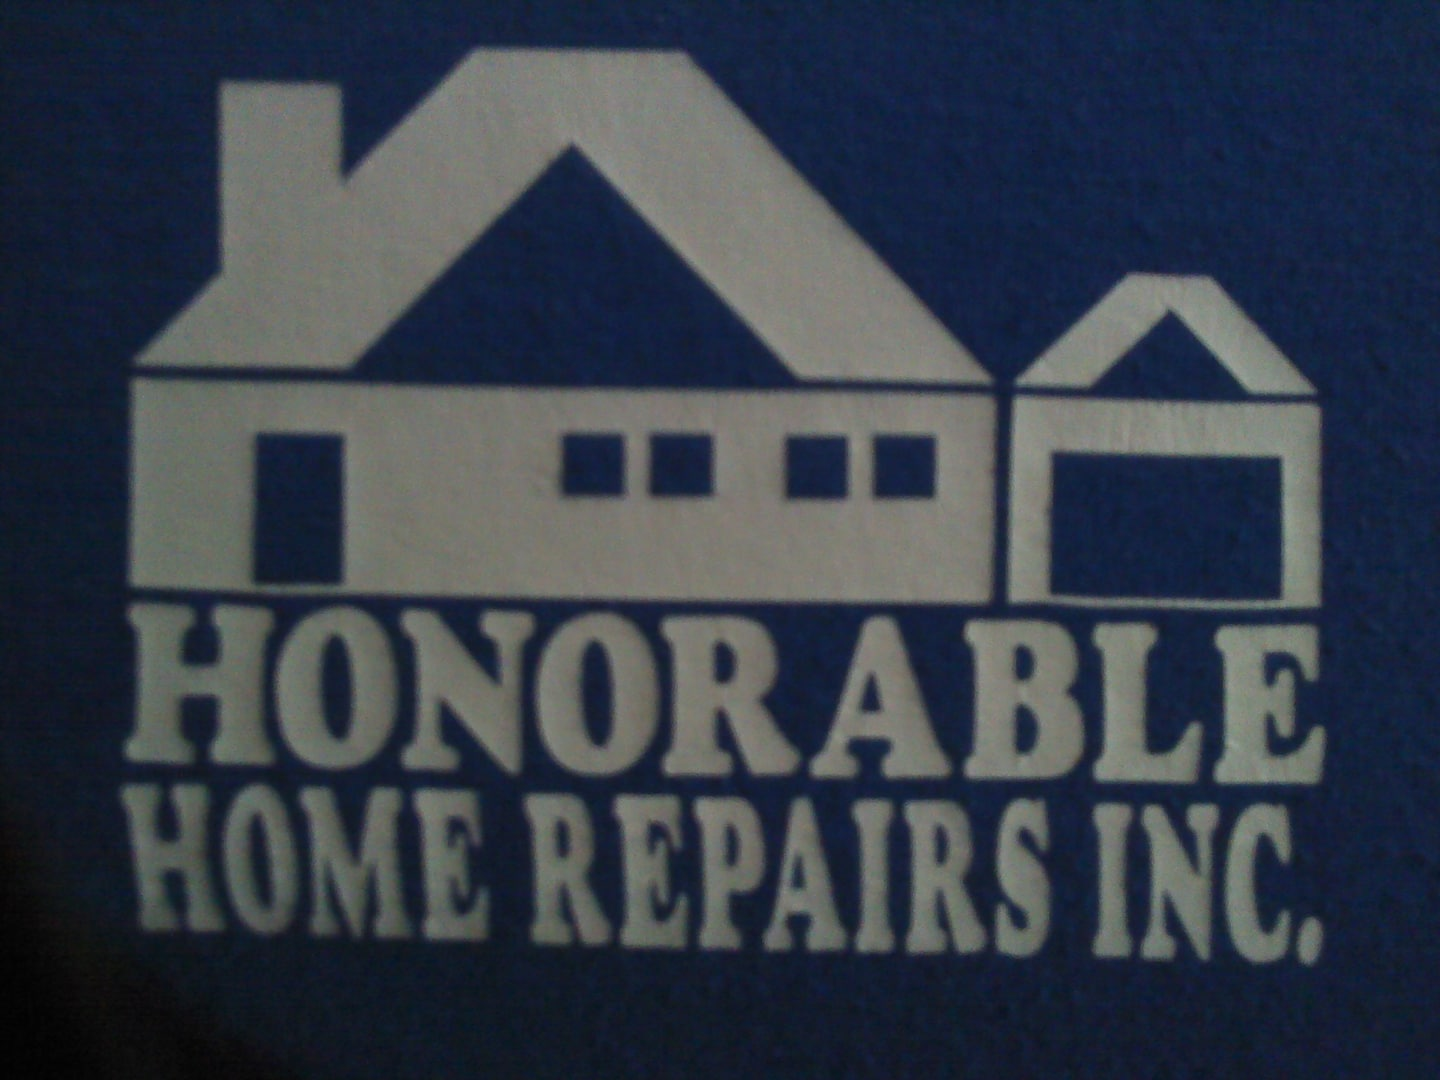 Honorable Home Repairs